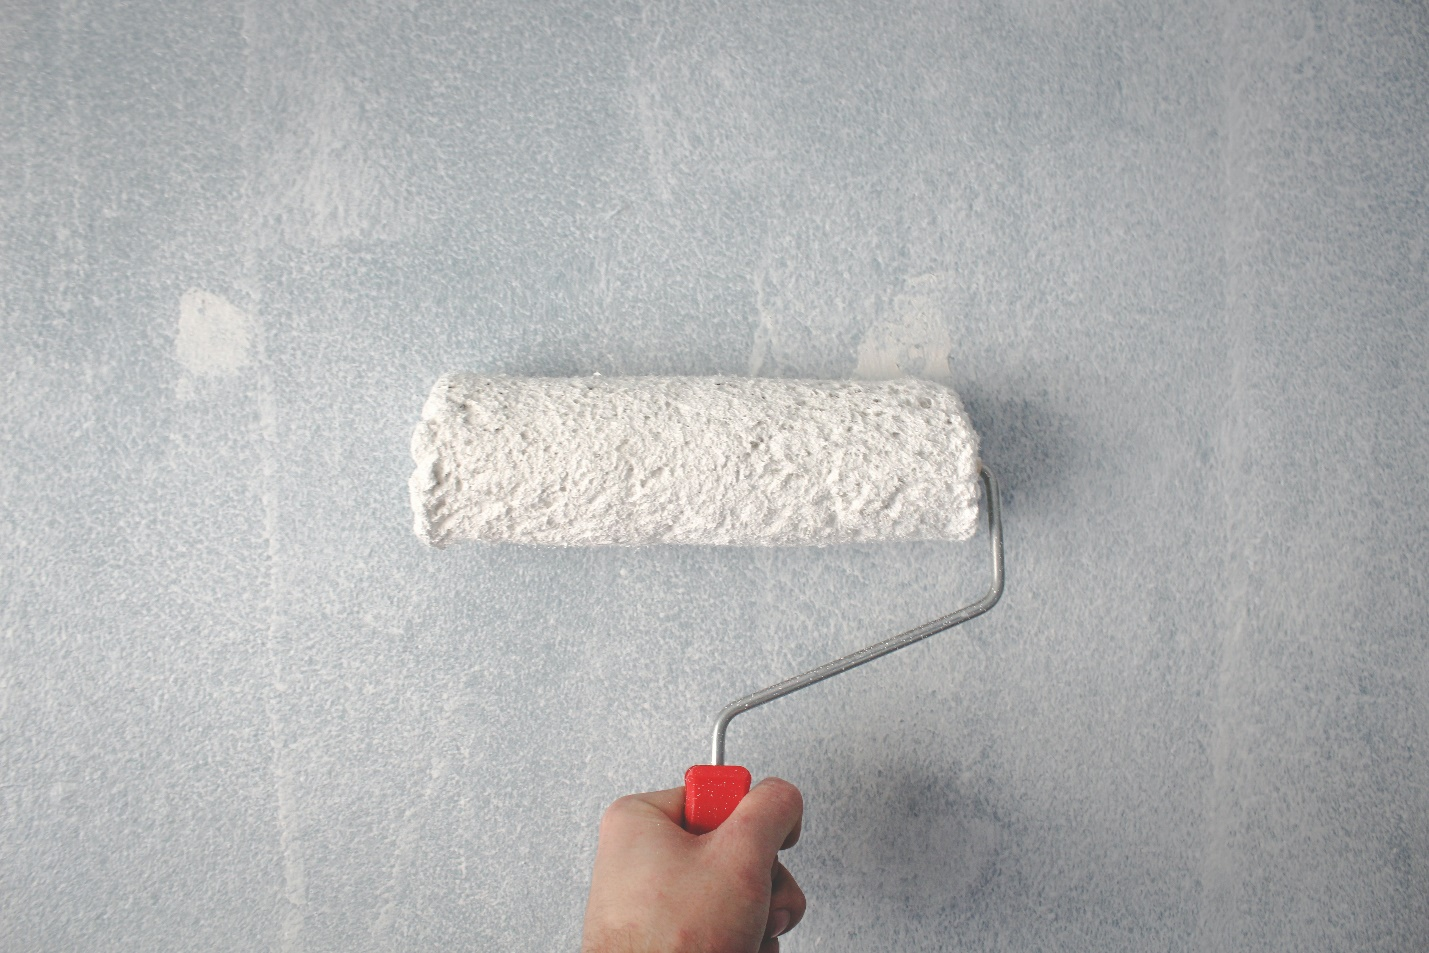 A white paint roller